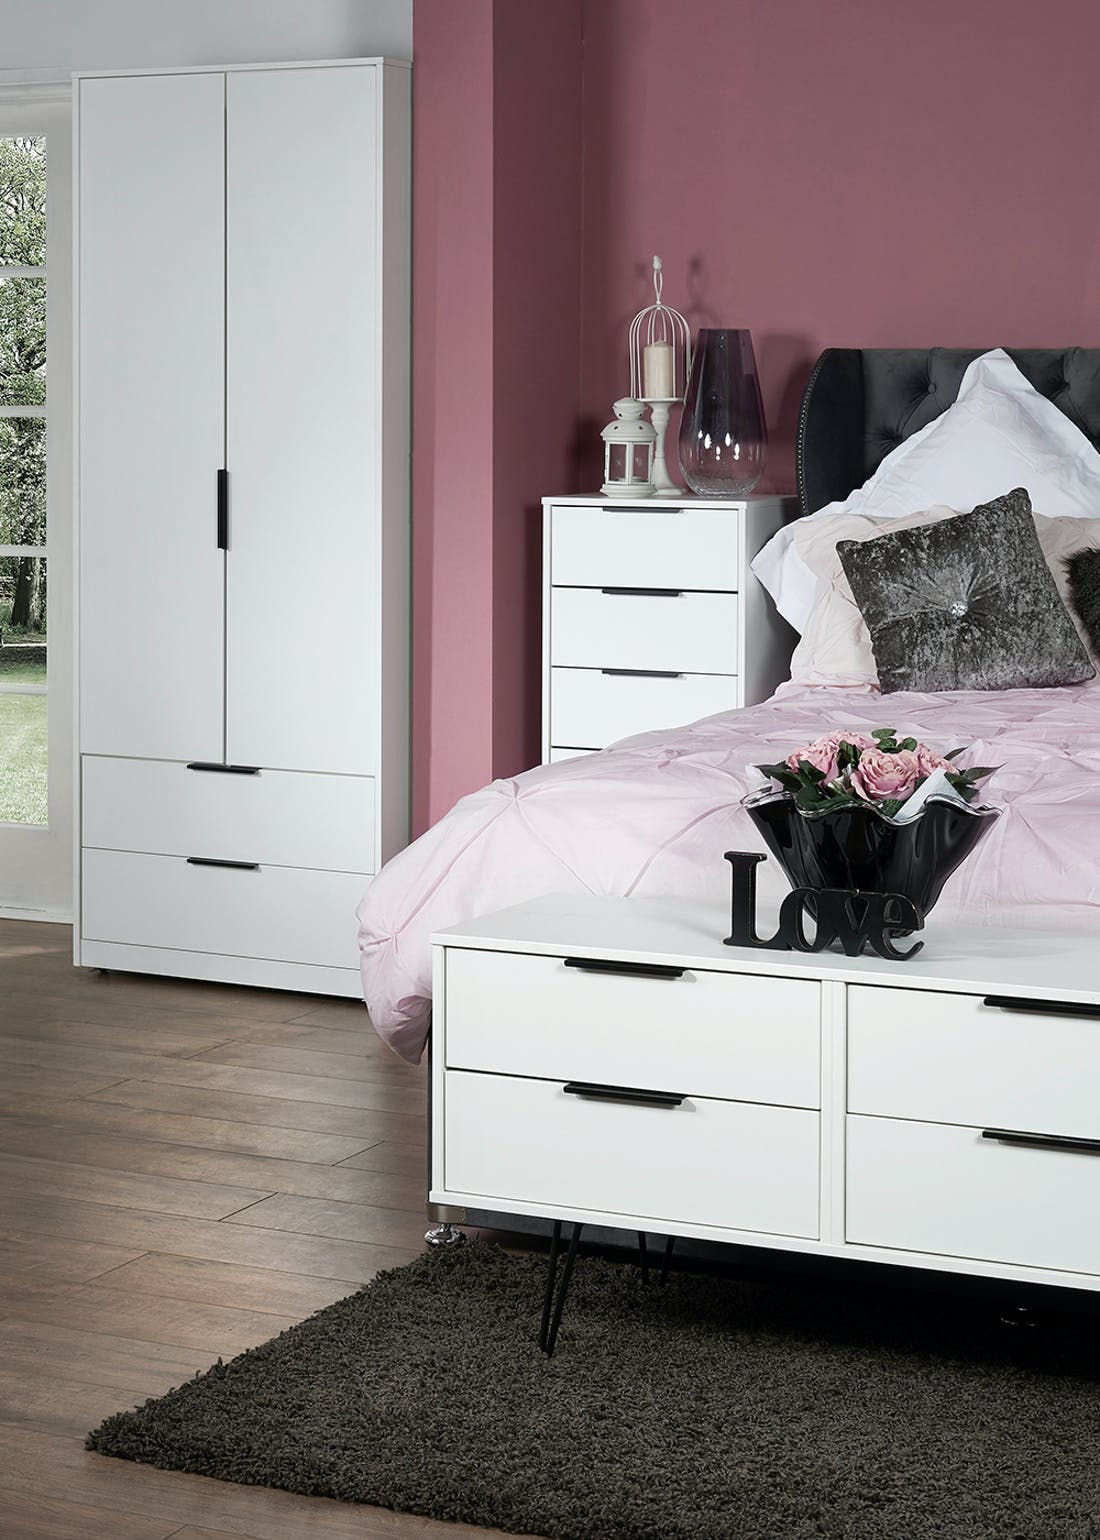 Swift Milano 1 Drawer Bedside Table (41cm x 45cm x 39.5cm)